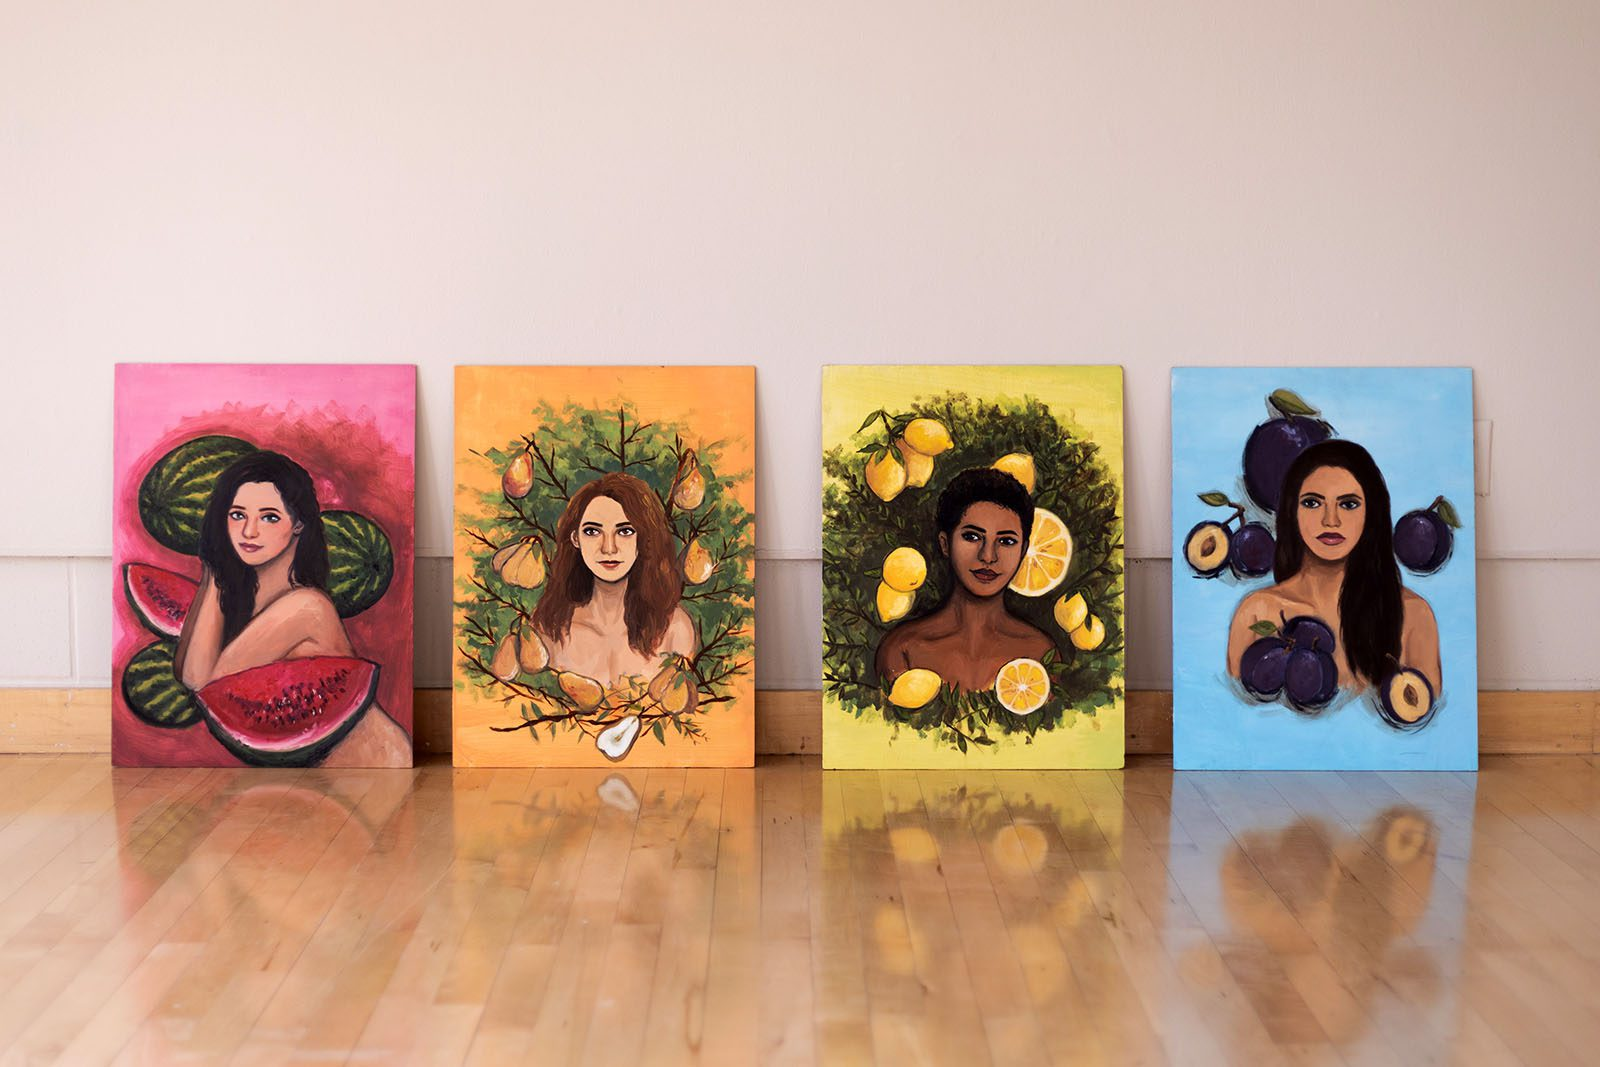 A photo of four paintings, each featuring a portrait of a woman surrounded by fruit. The paintings rest on a hard-wood floor and against a white wall.